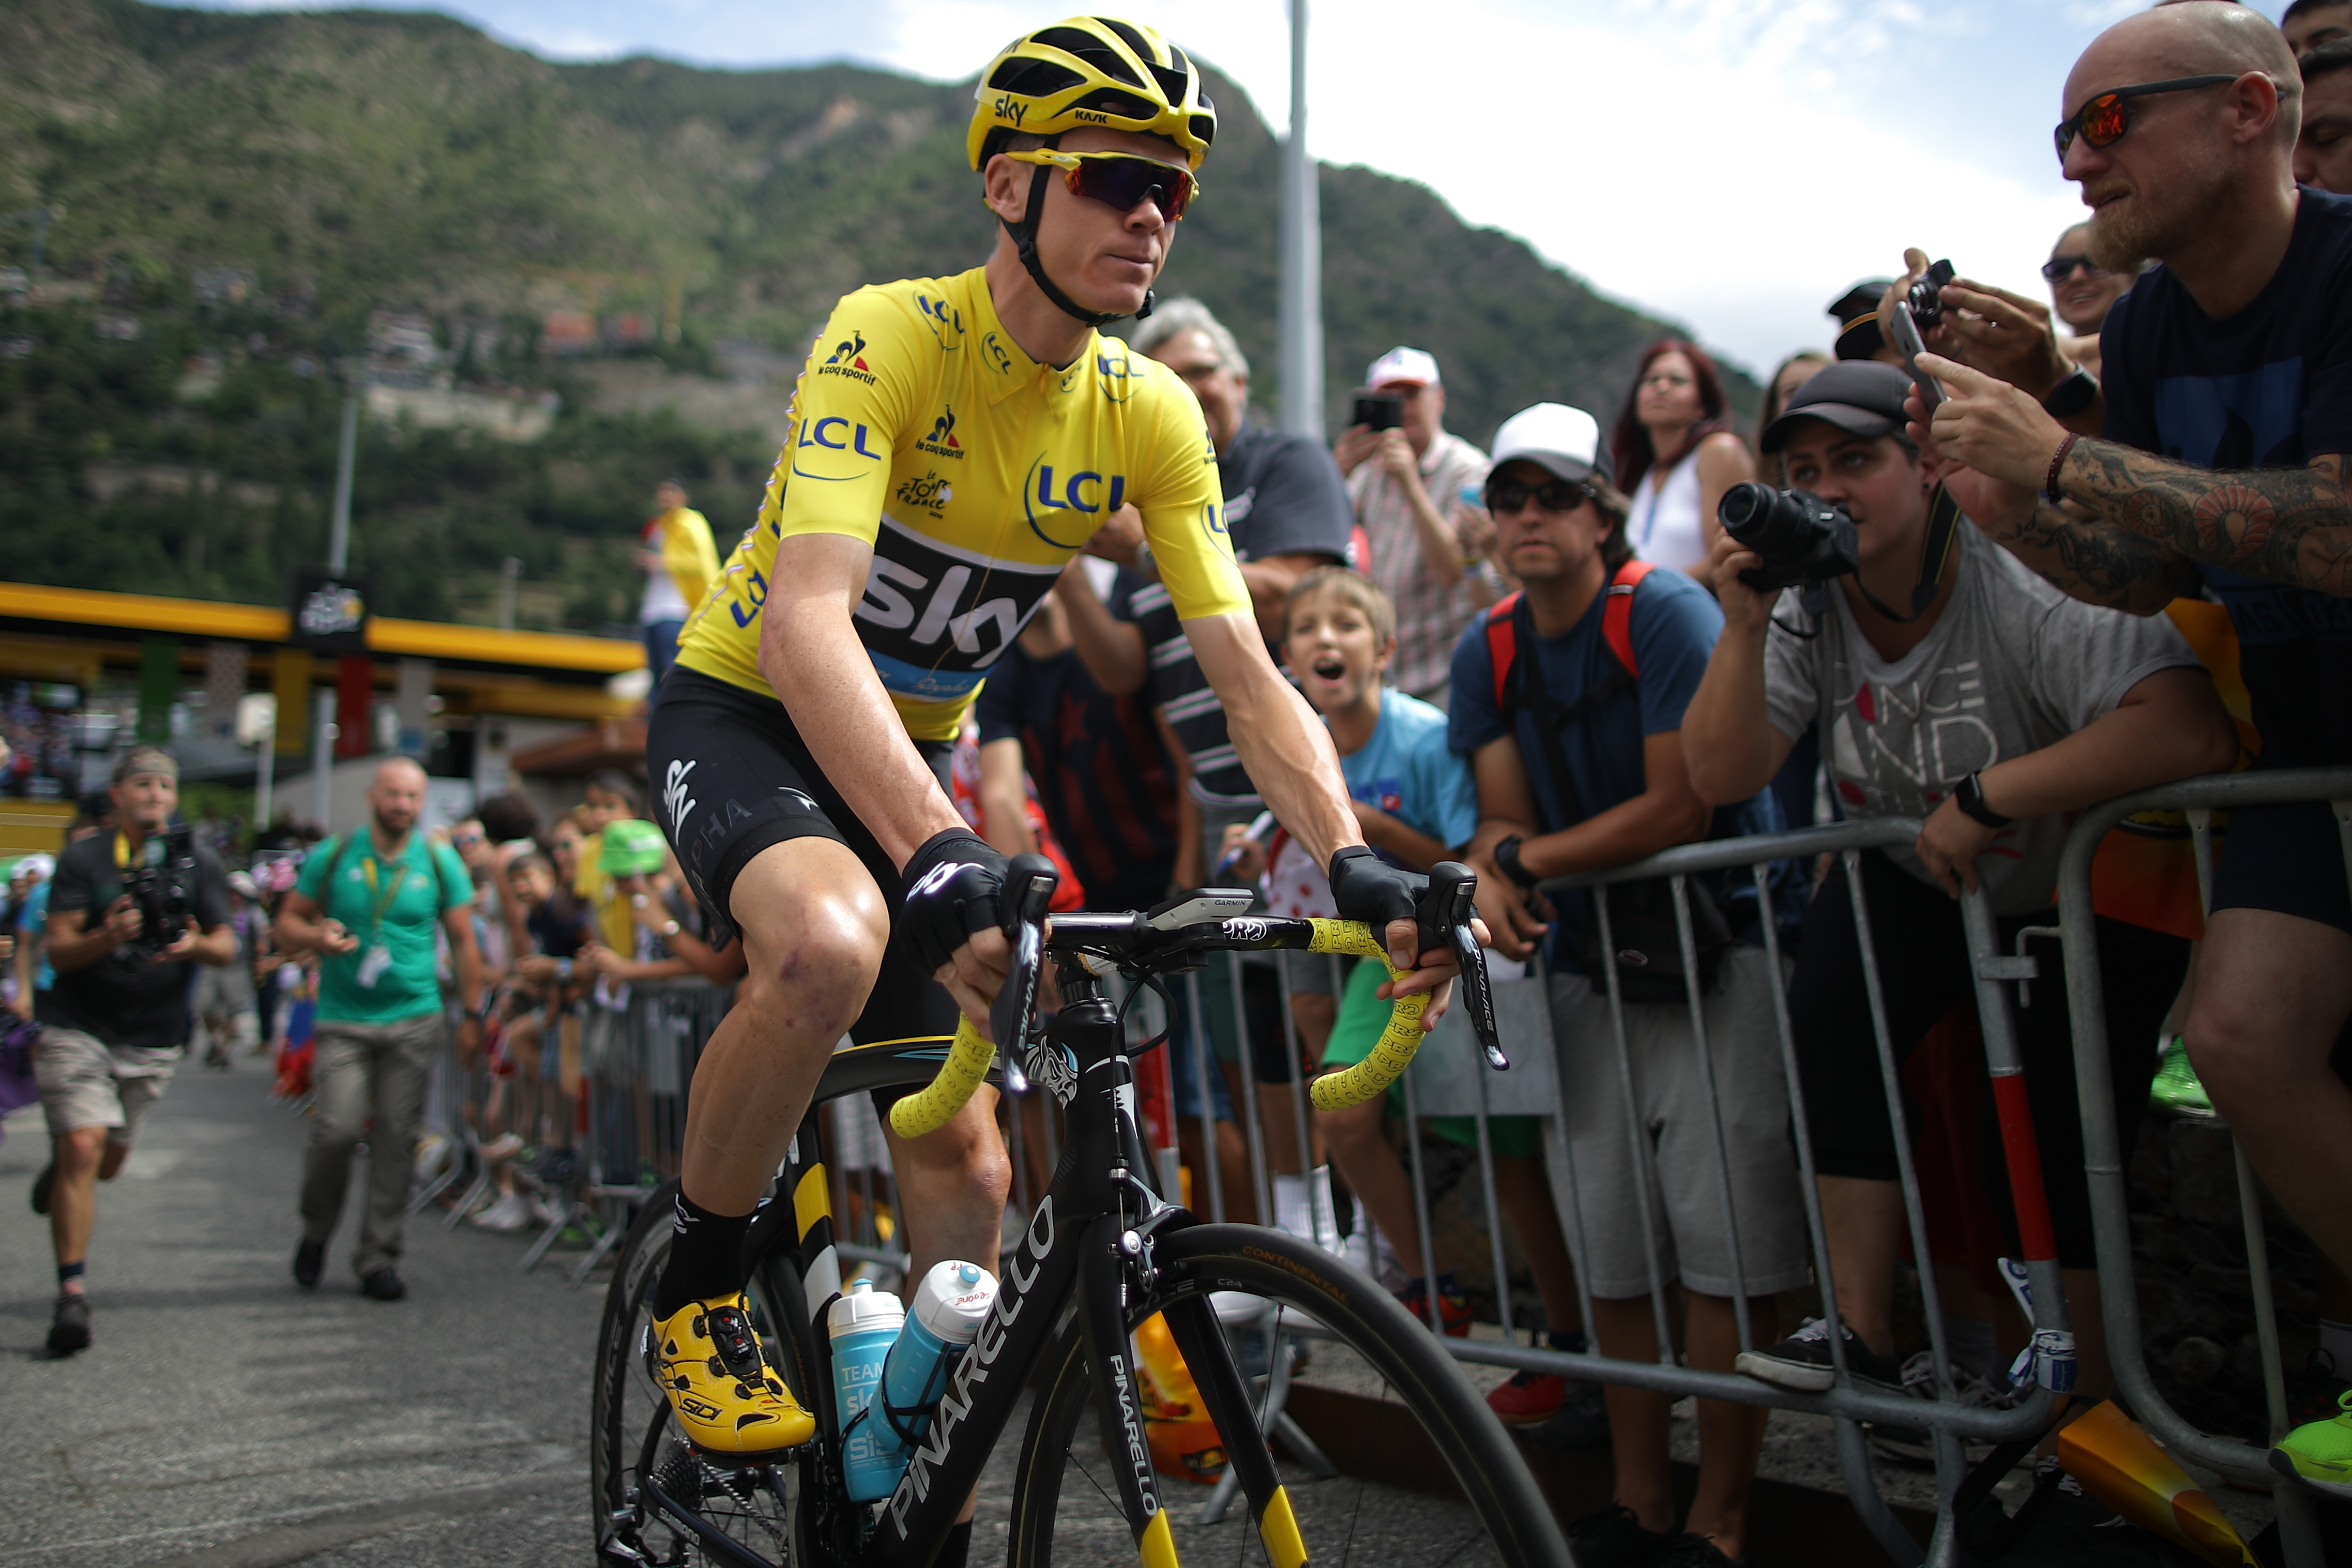 5 Ways the Tour de France Contenders Are Physical Freaks